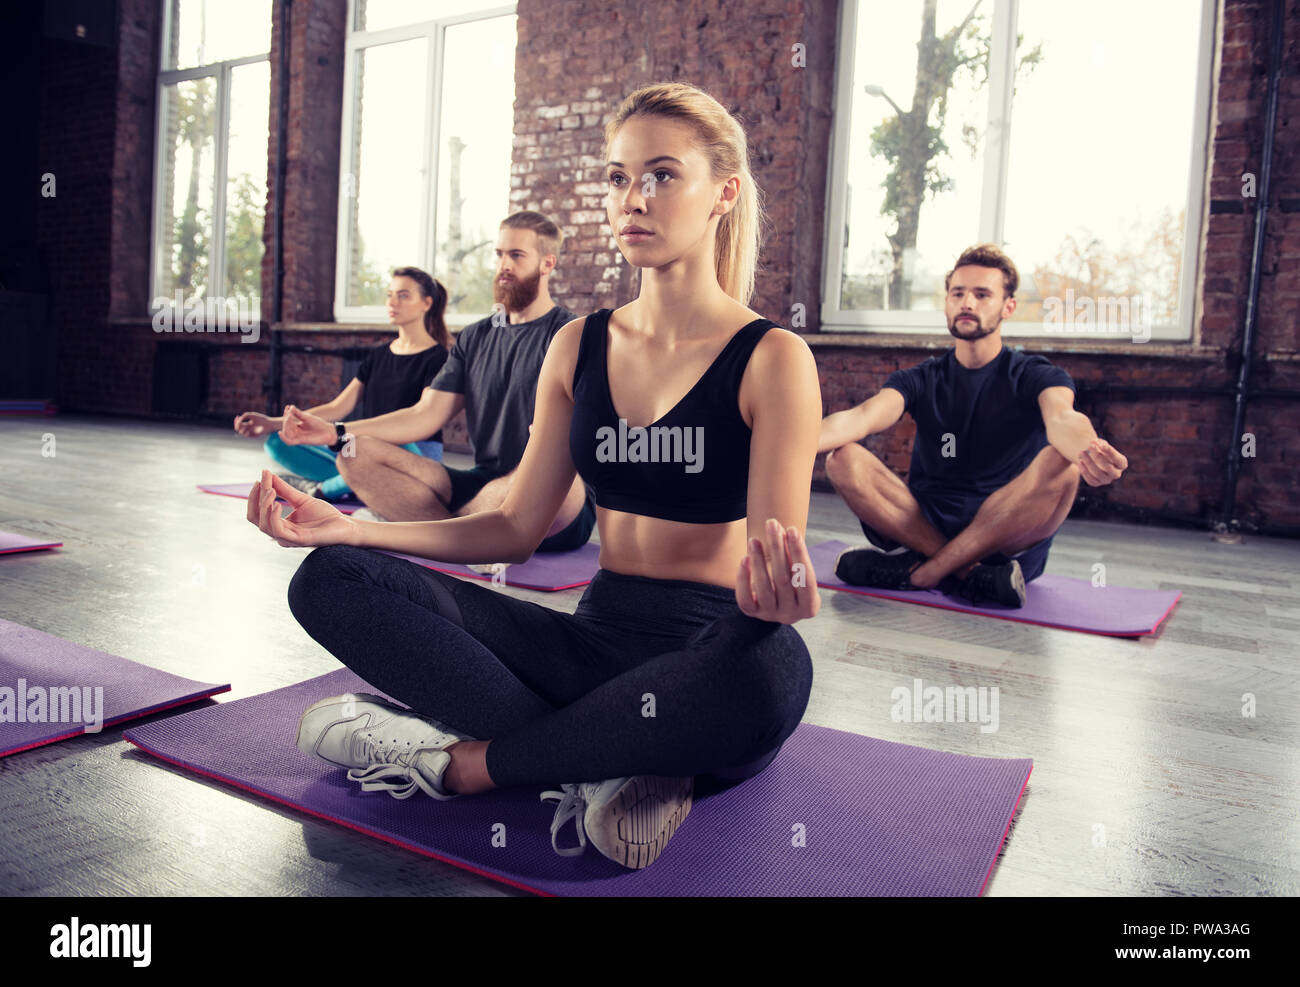 Yoga Meditation Of Young People In Lotus Pose In Fitness Center Stock Photo Alamy